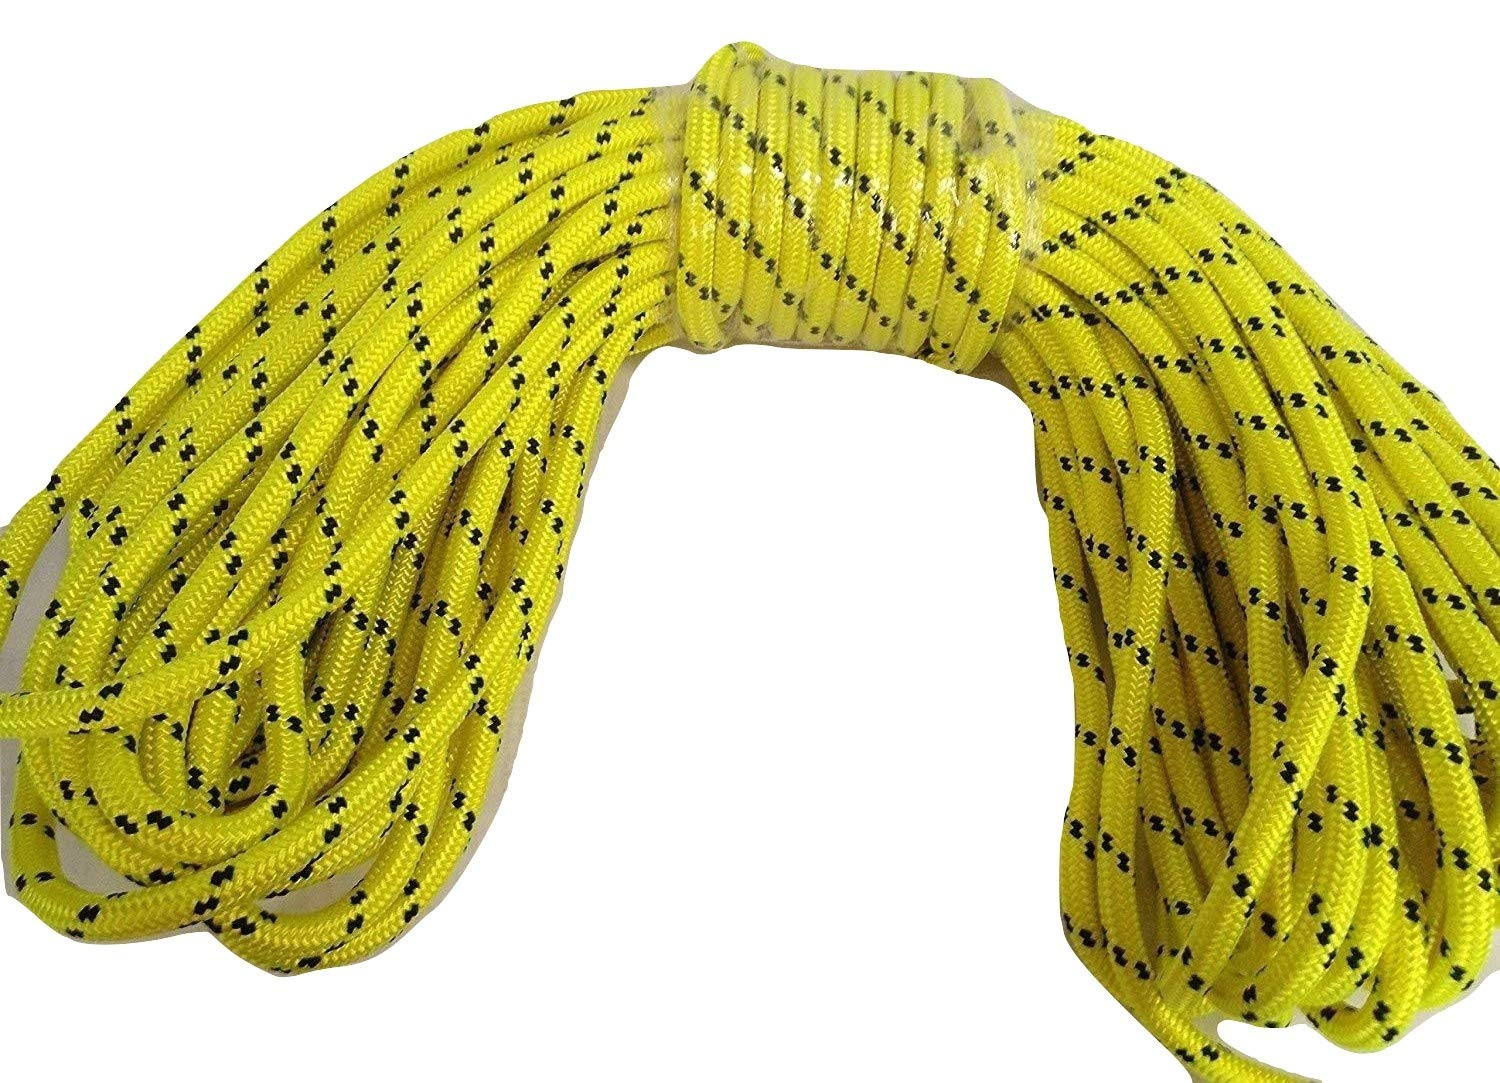 1/2'' By 125' Arborist Rigging Rope, Yellow by Blue Ox Rope (Image #1)